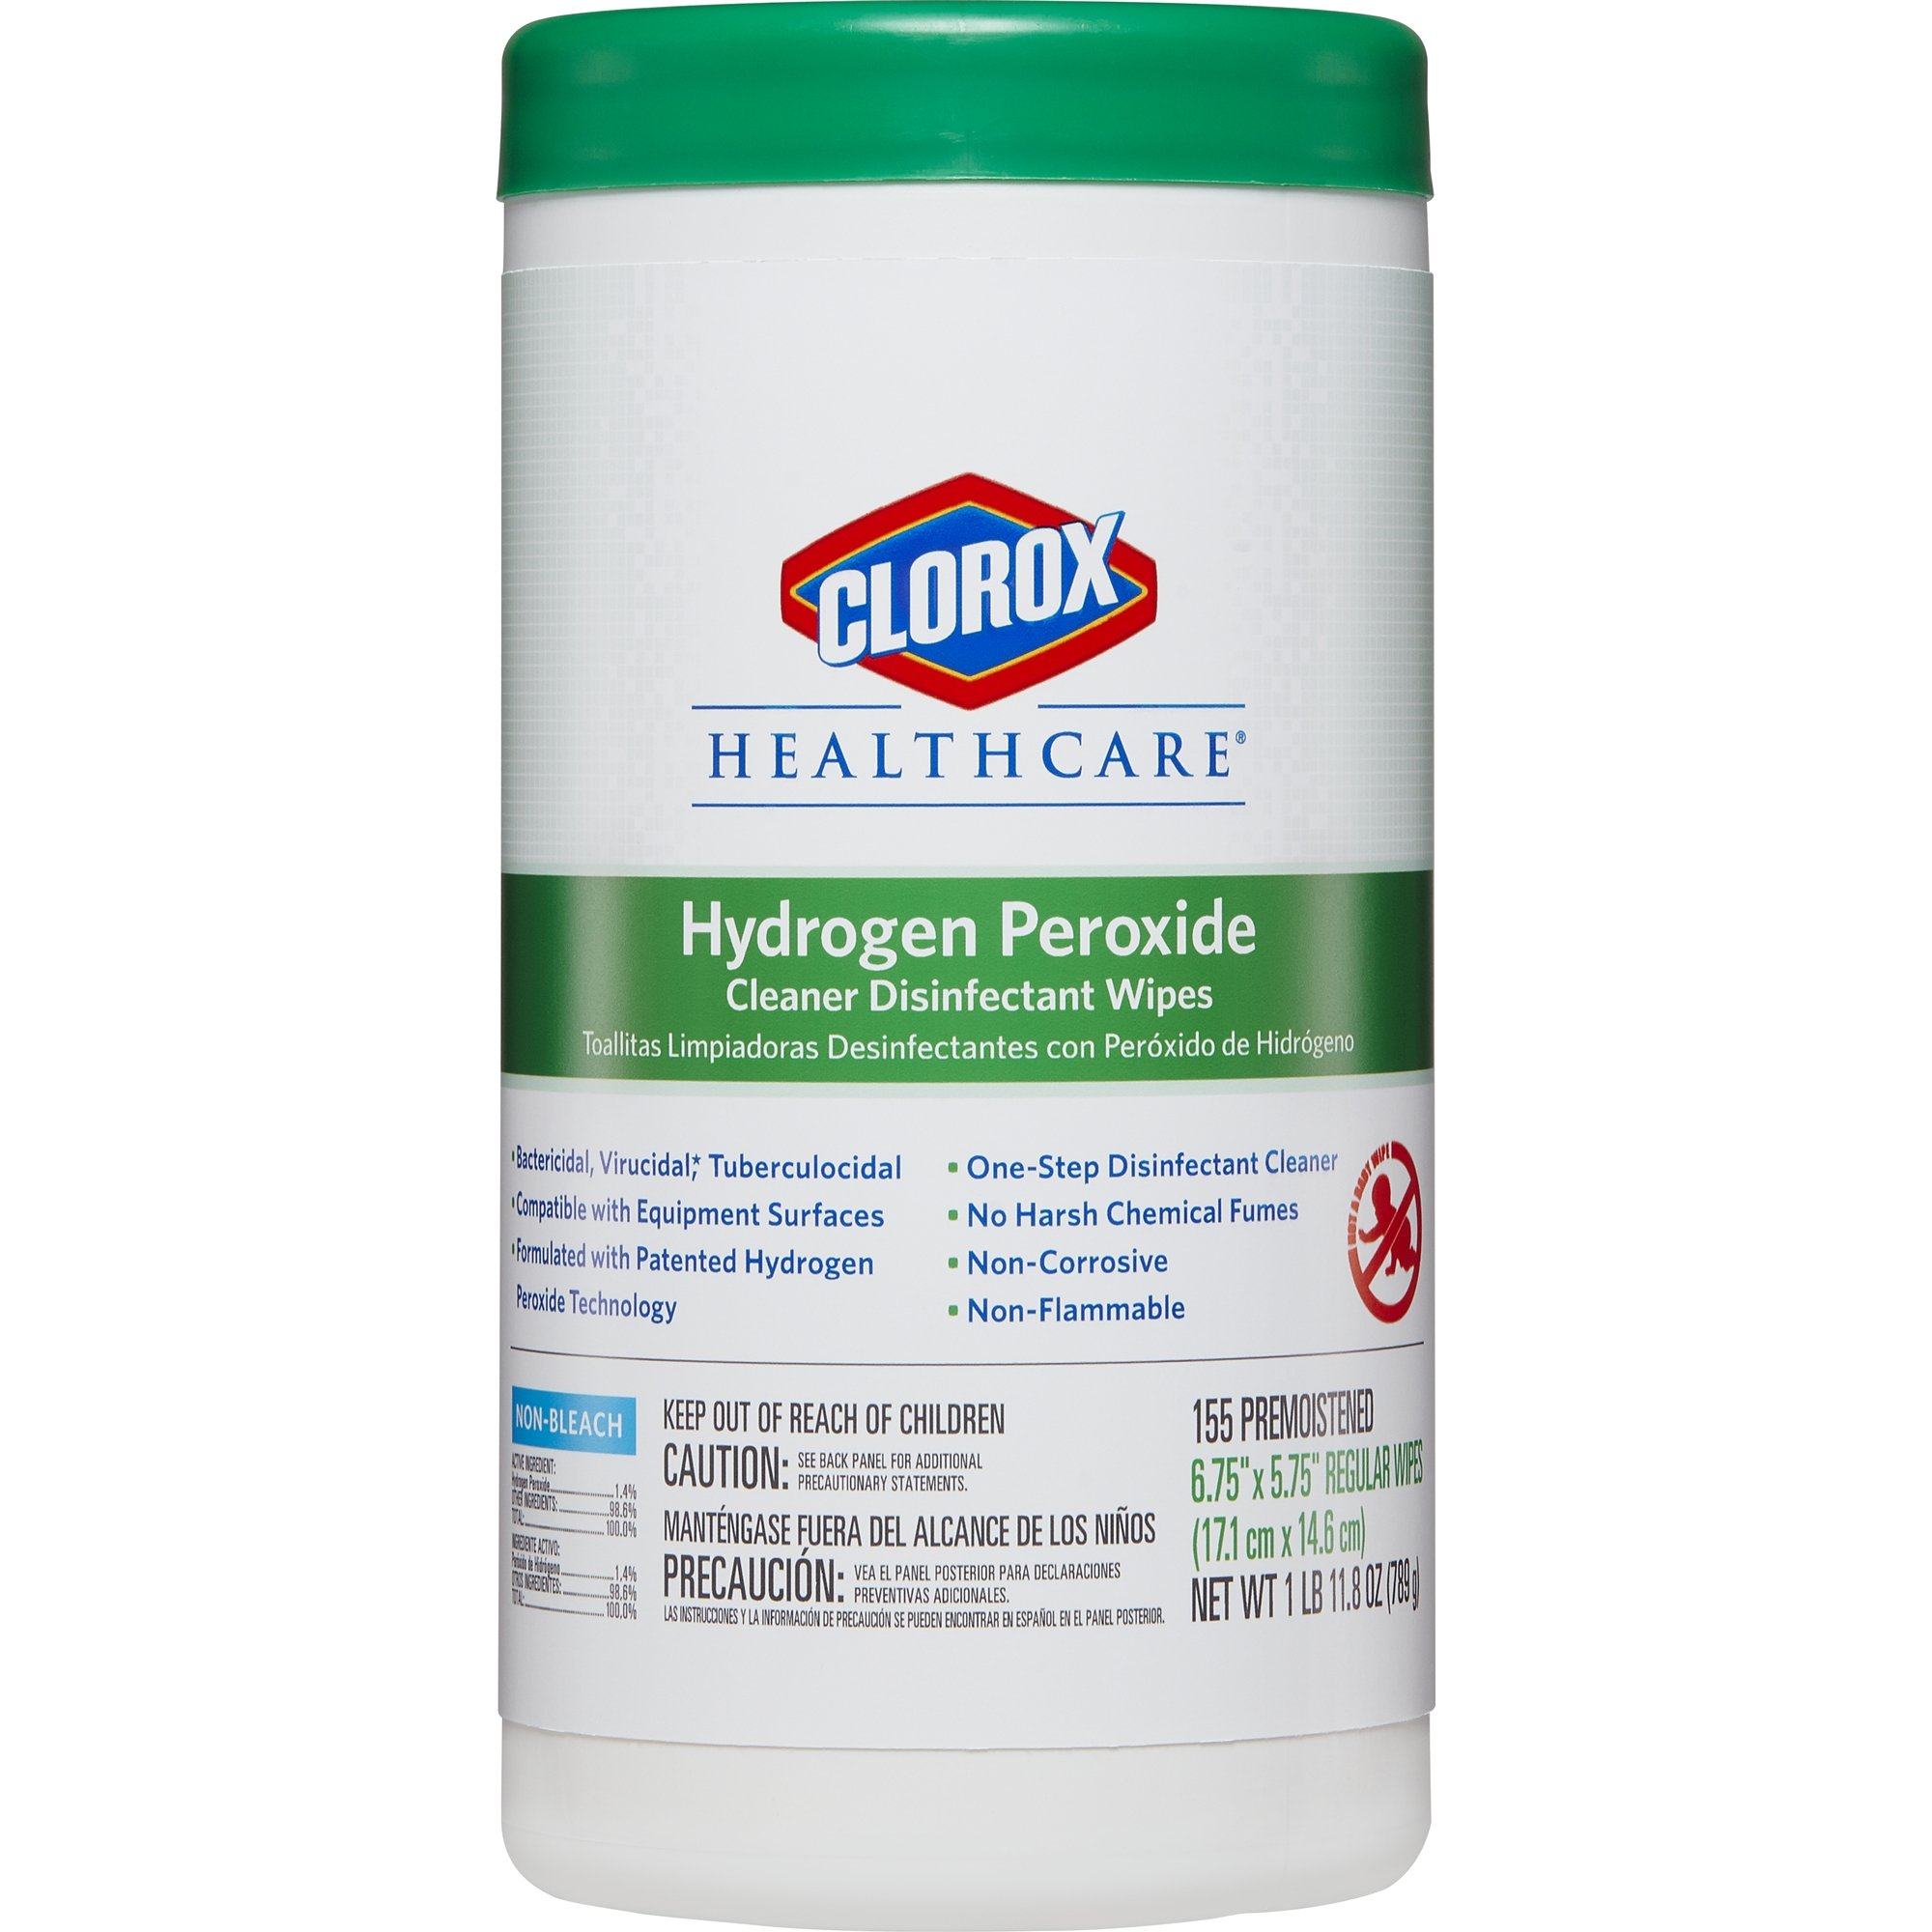 Clorox Healthcare Hydrogen Peroxide Cleaner Disinfectant Wipes, 155 Count Canister (Pack of 6) by Clorox (Image #2)